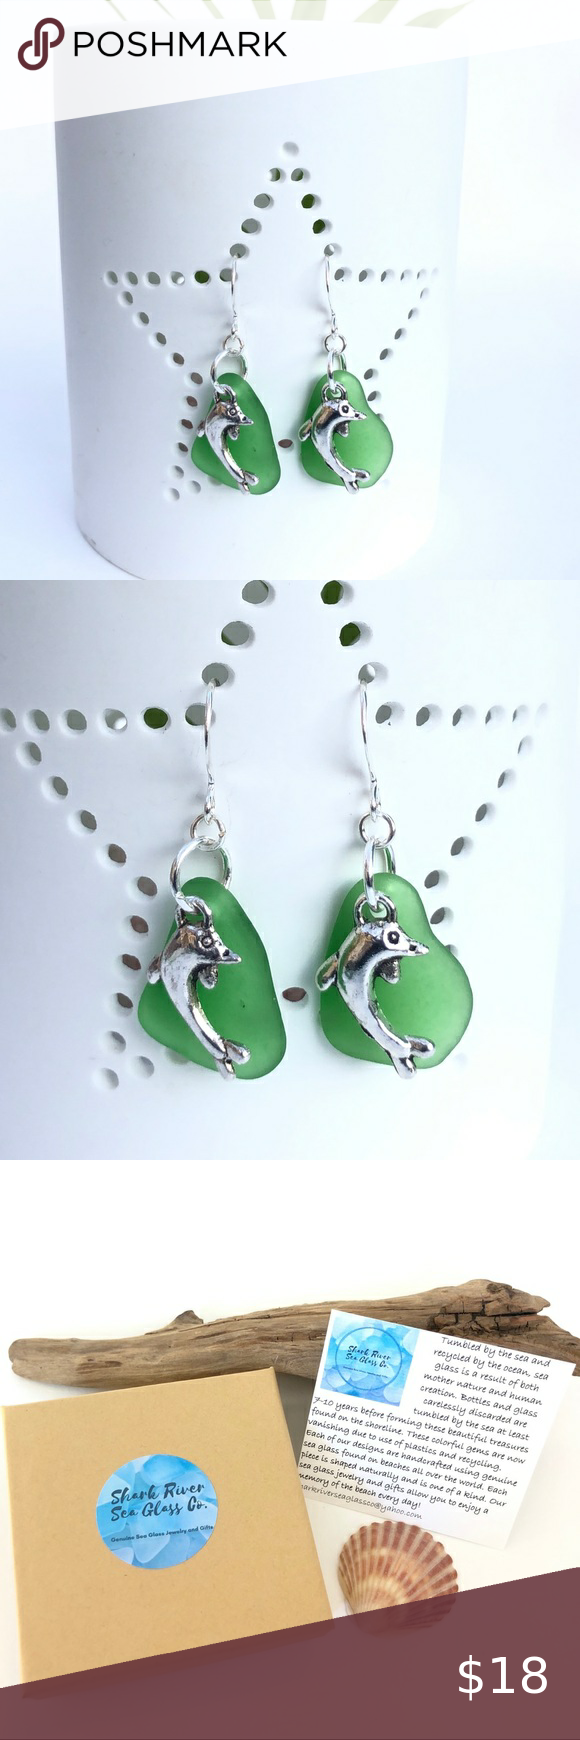 NEW Genuine Green Sea Glass Dolphin Earrings NEW G